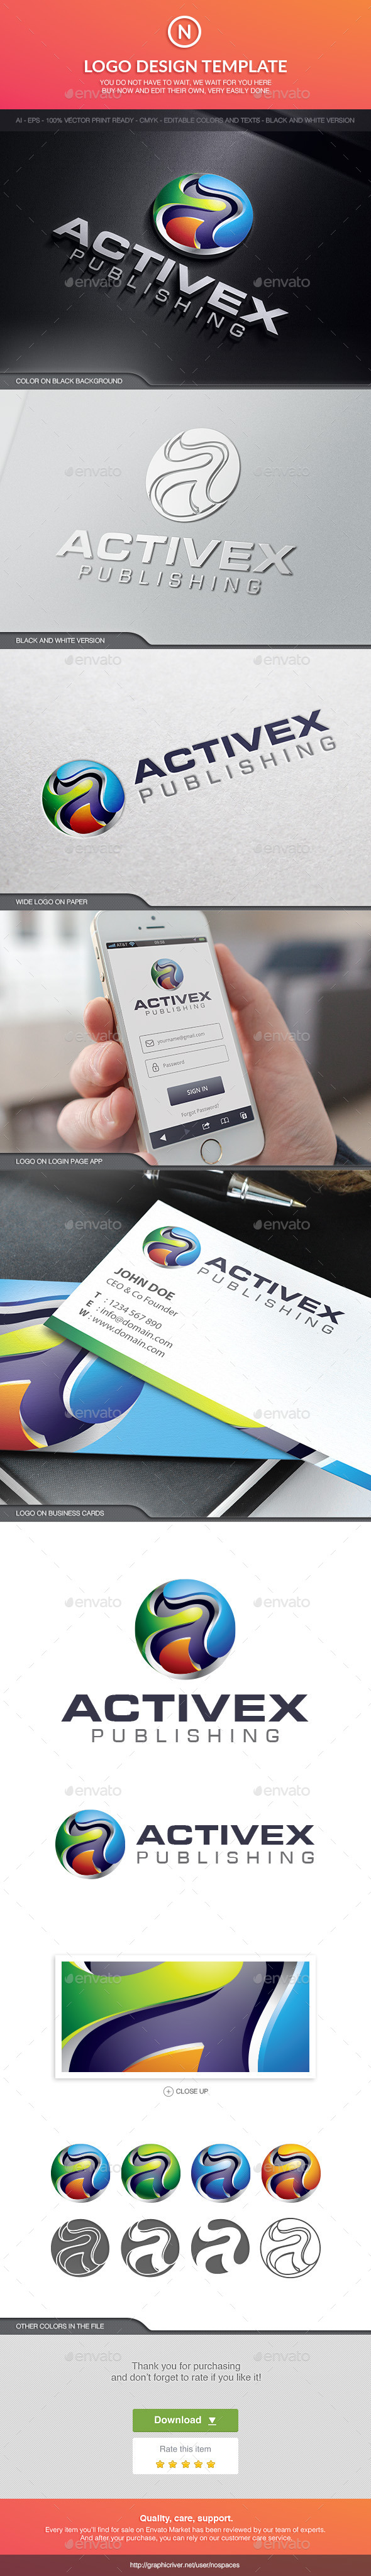 Activex Technology - 3d Abstract